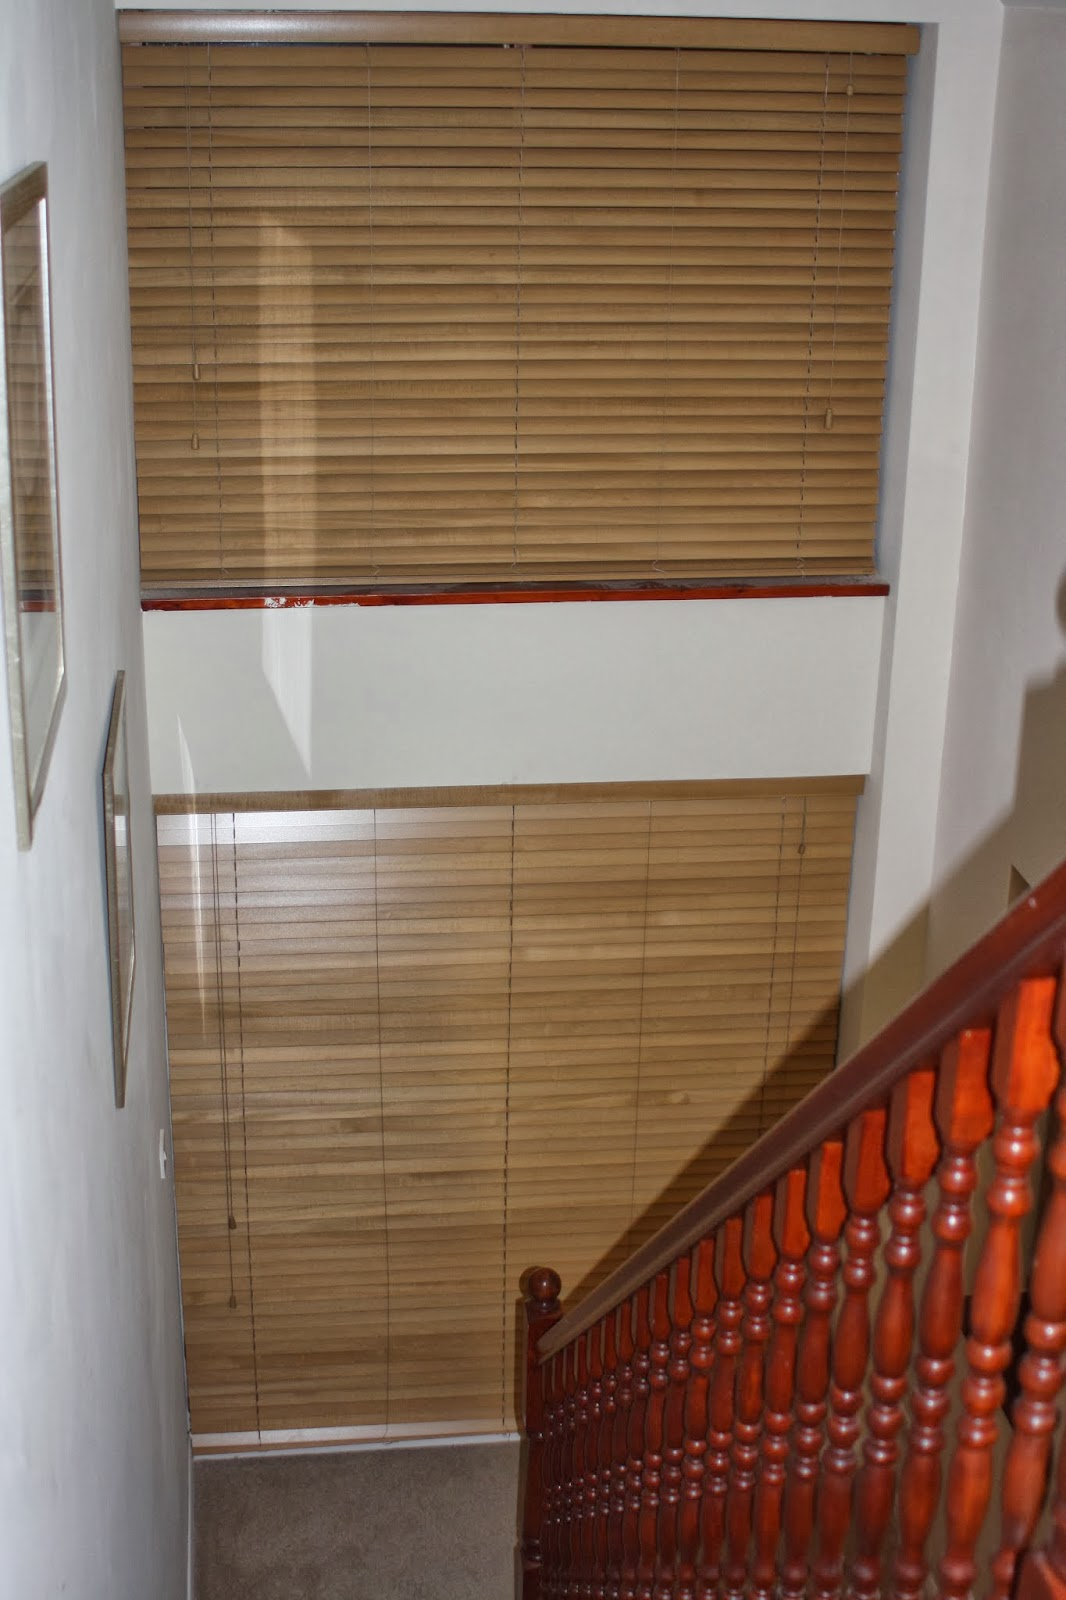 New-house-hall-window-blinds-365